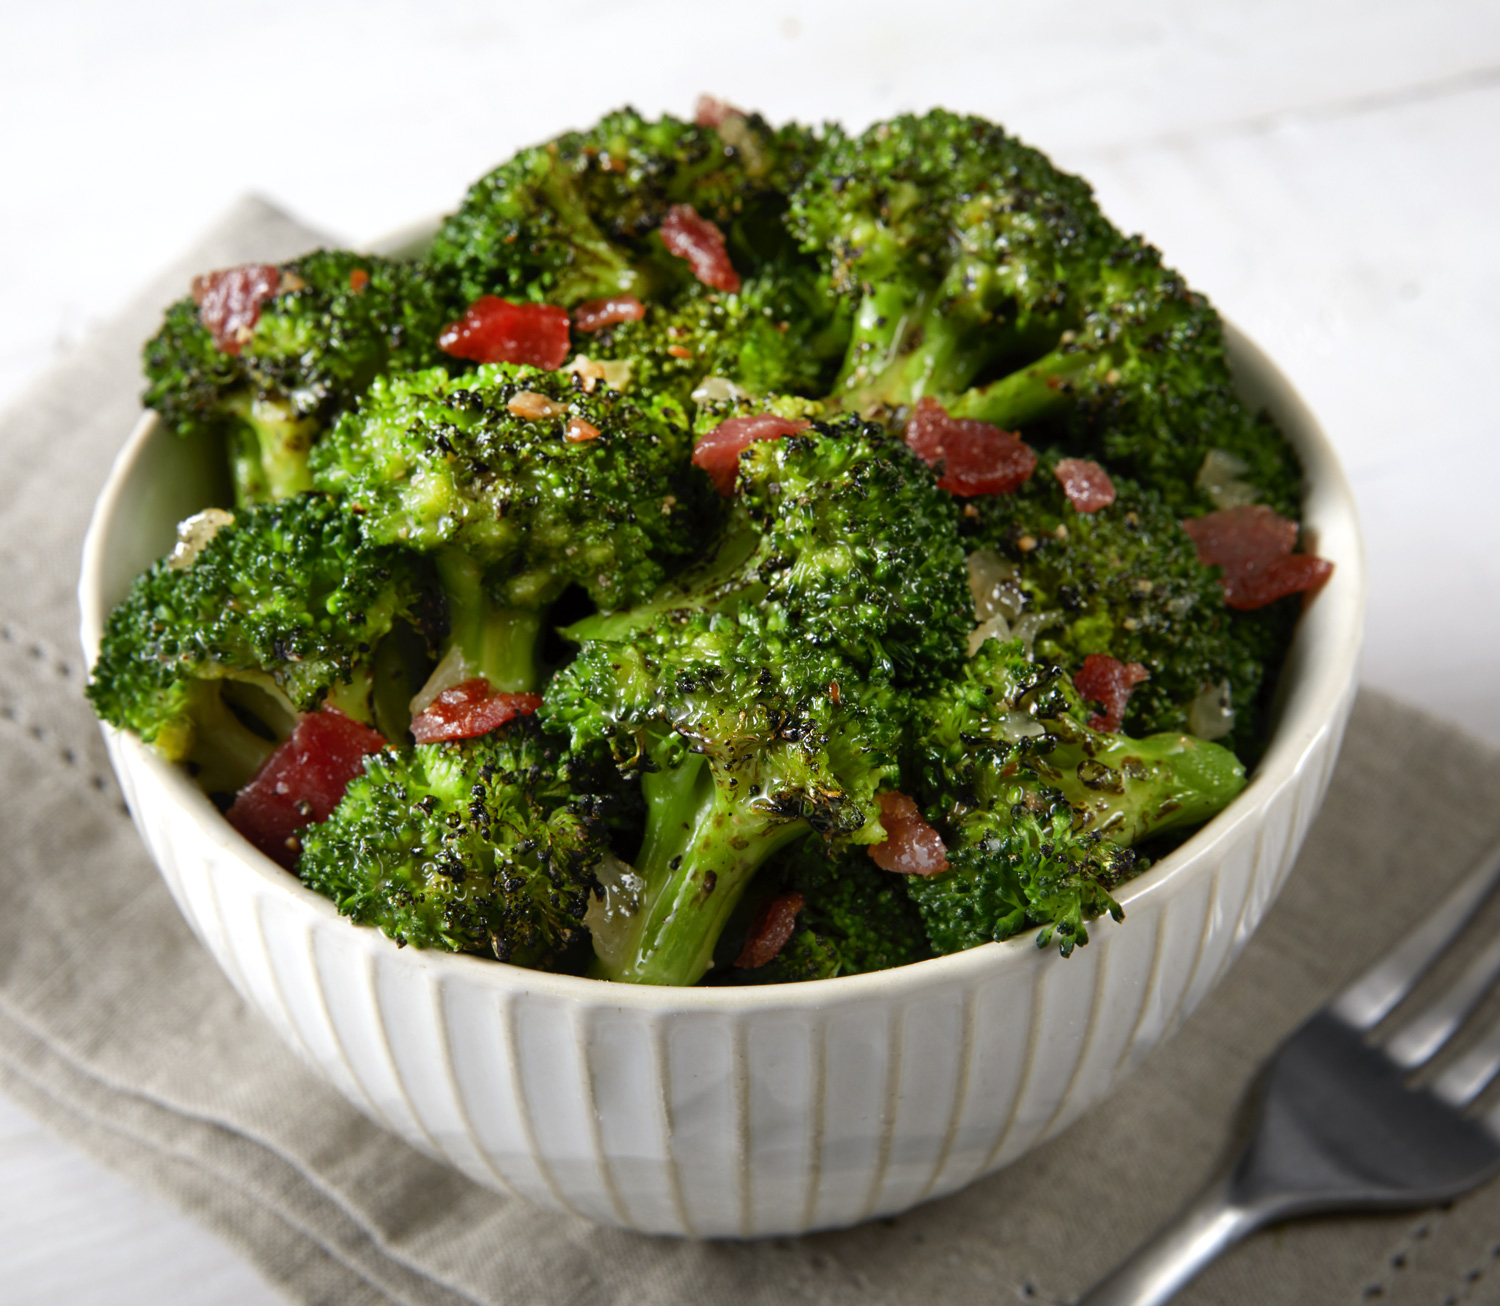 Bacon_Broccoli-456-apf